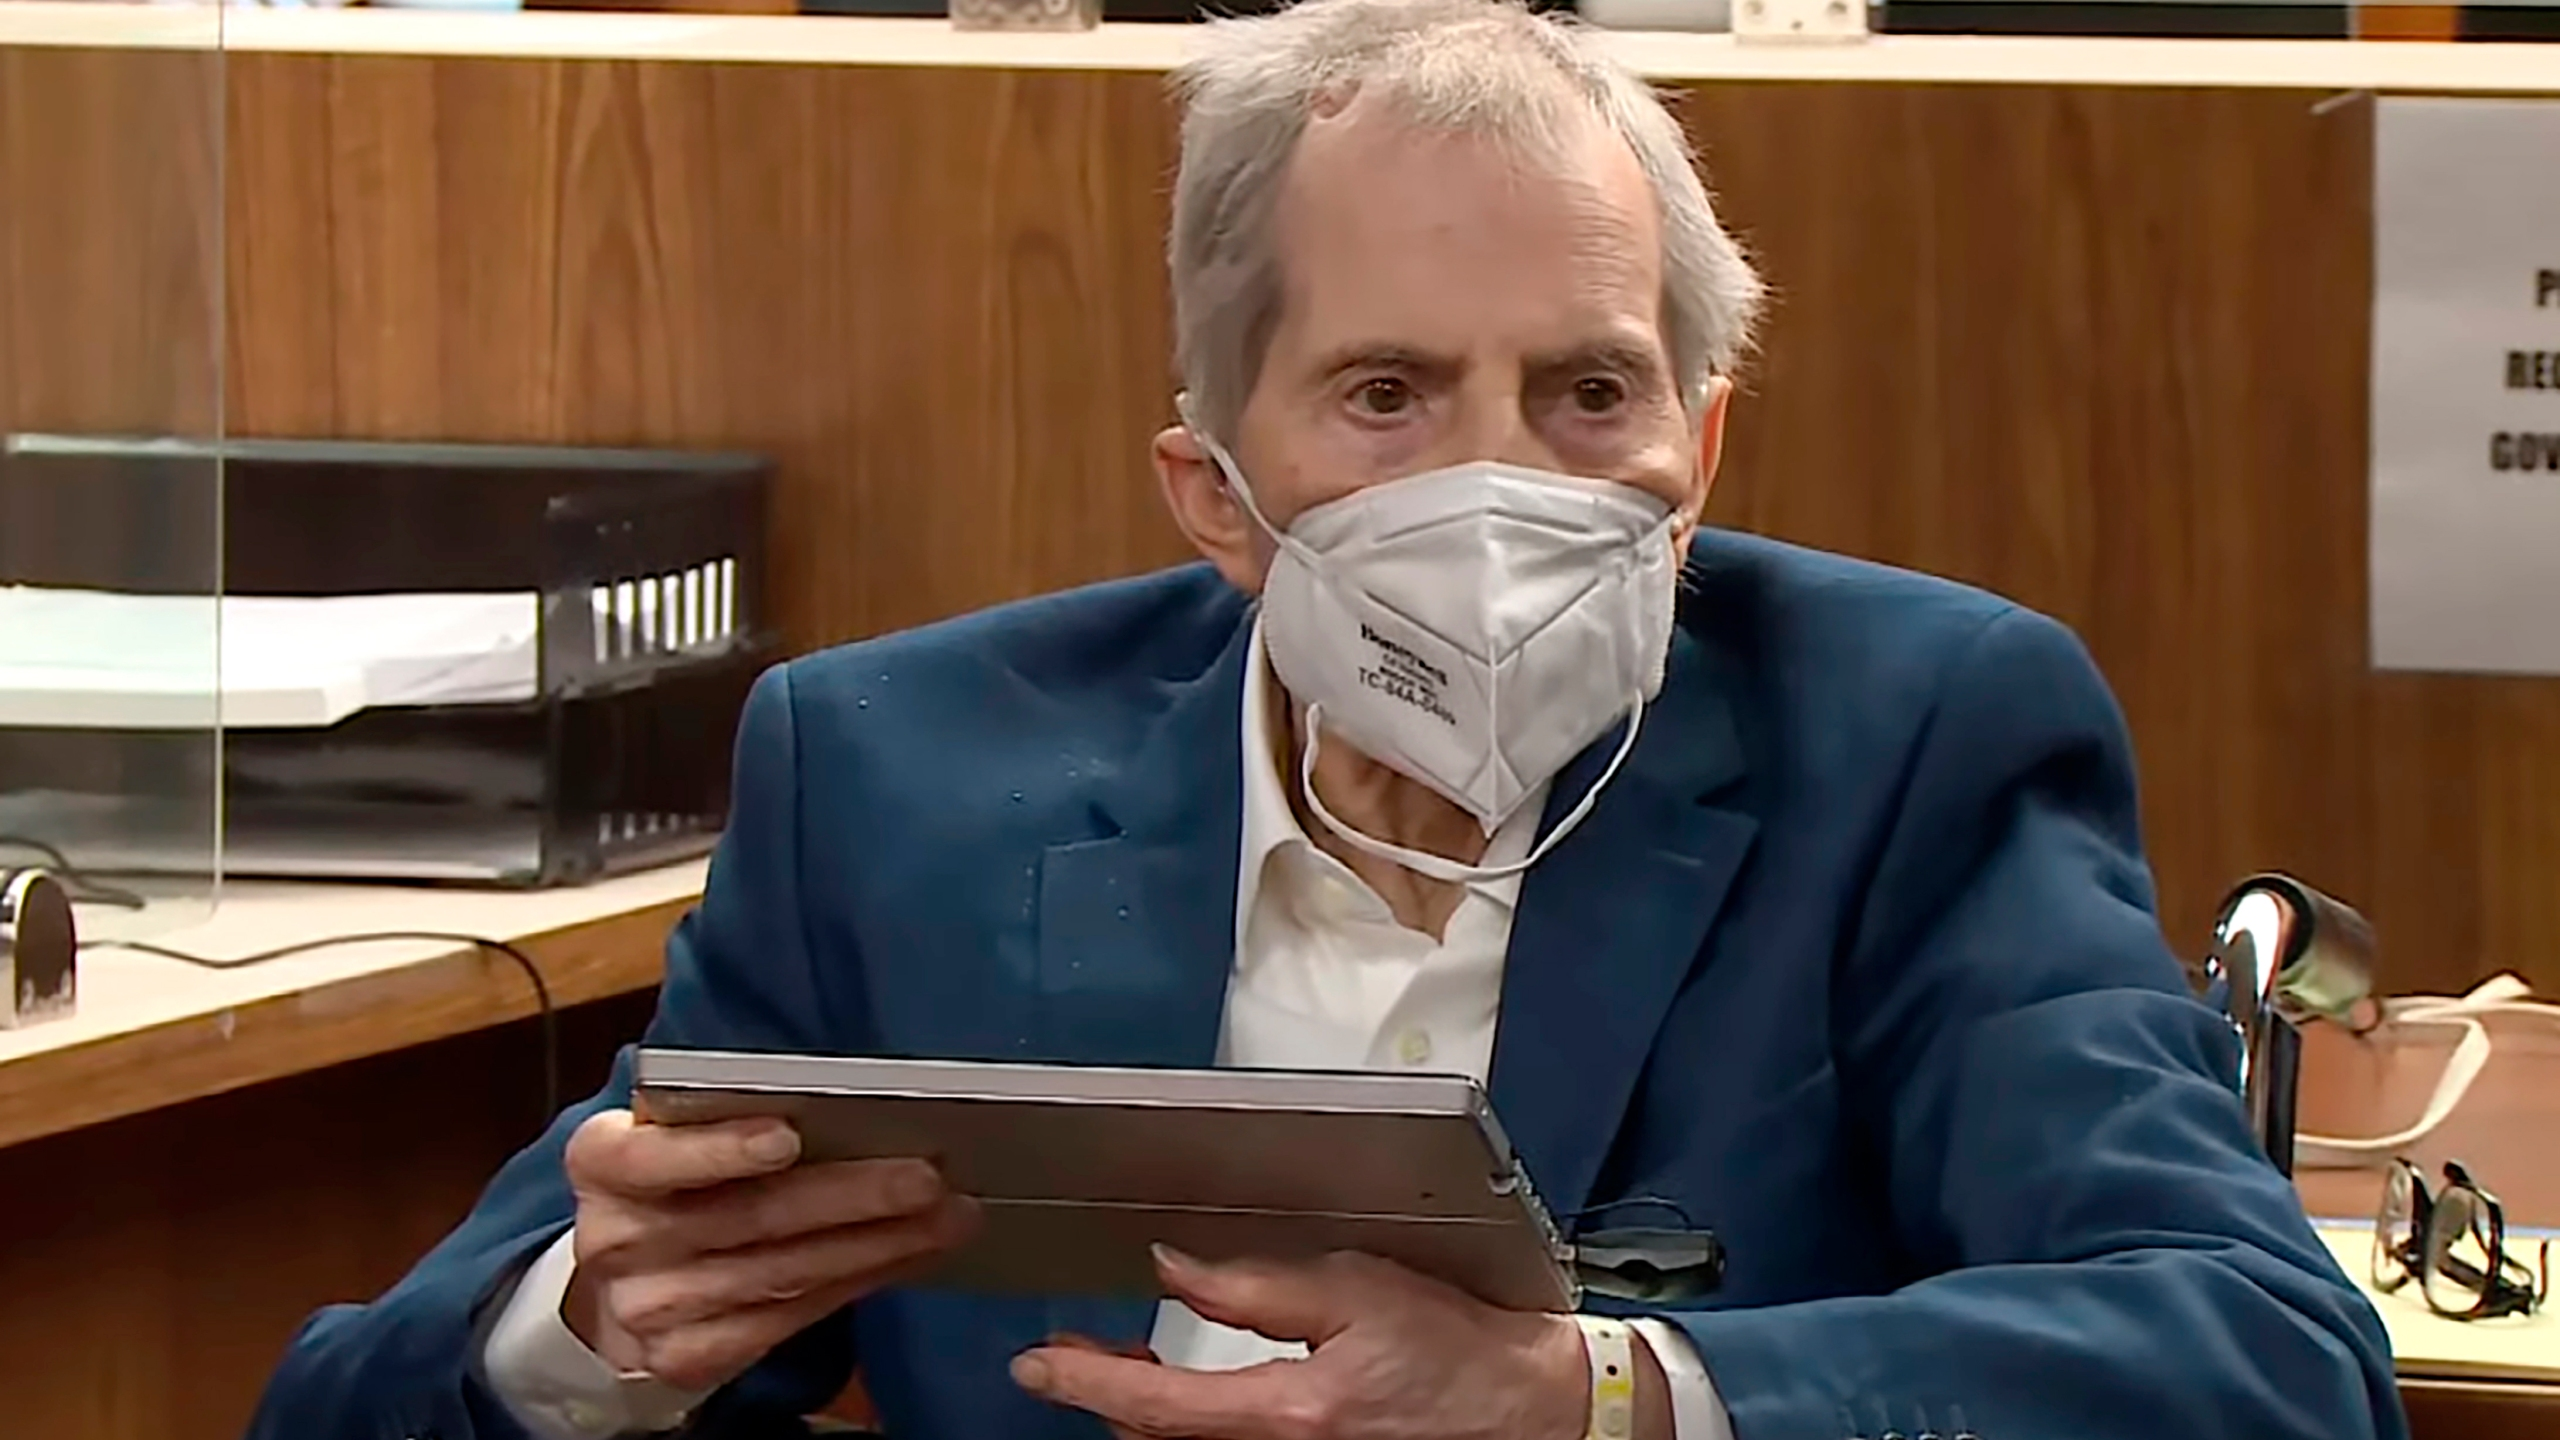 In this still image taken from the Law & Crime Network court video, real estate heir Robert Durst watches as Deputy District Attorney John Lewin presents a new round of opening statements in the murder case against Durst after a 14-month recess due to the coronavirus pandemic in Los Angeles County Superior Court in Inglewood on May 18, 2021. (Law & Crime Network via Associated Press, Pool)